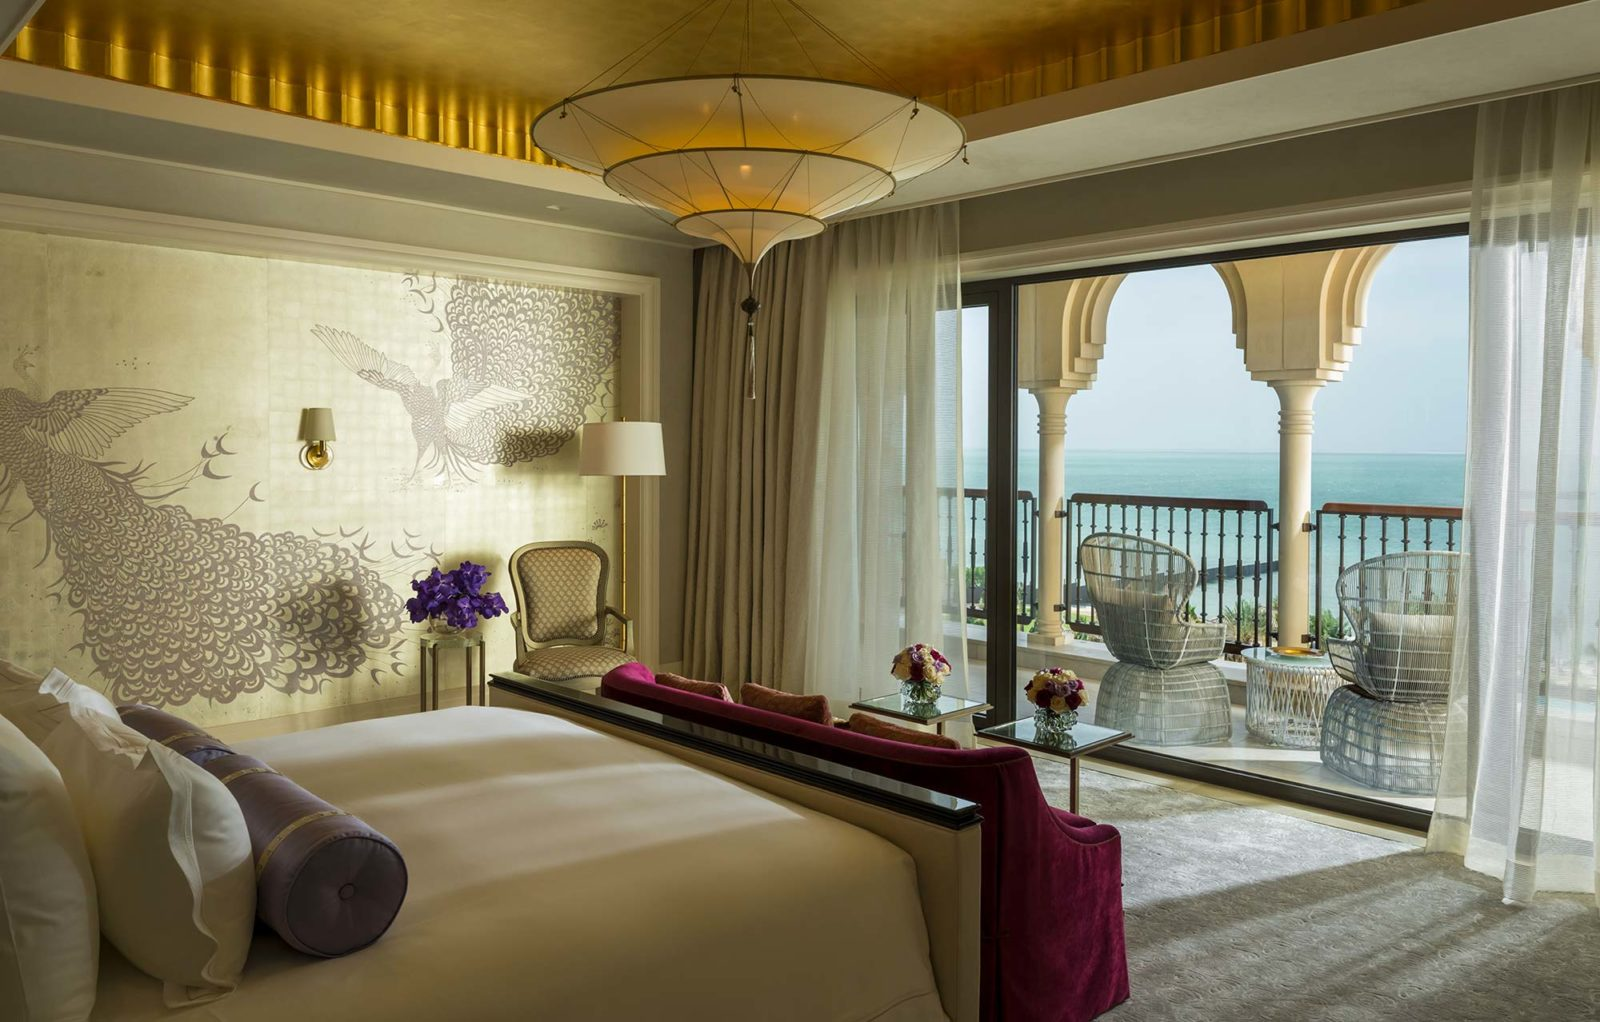 3 tiers plain silk lamp Scheherazade in Four Seasons Resort Hotel in Dubai, Royal Suite Master bedroom